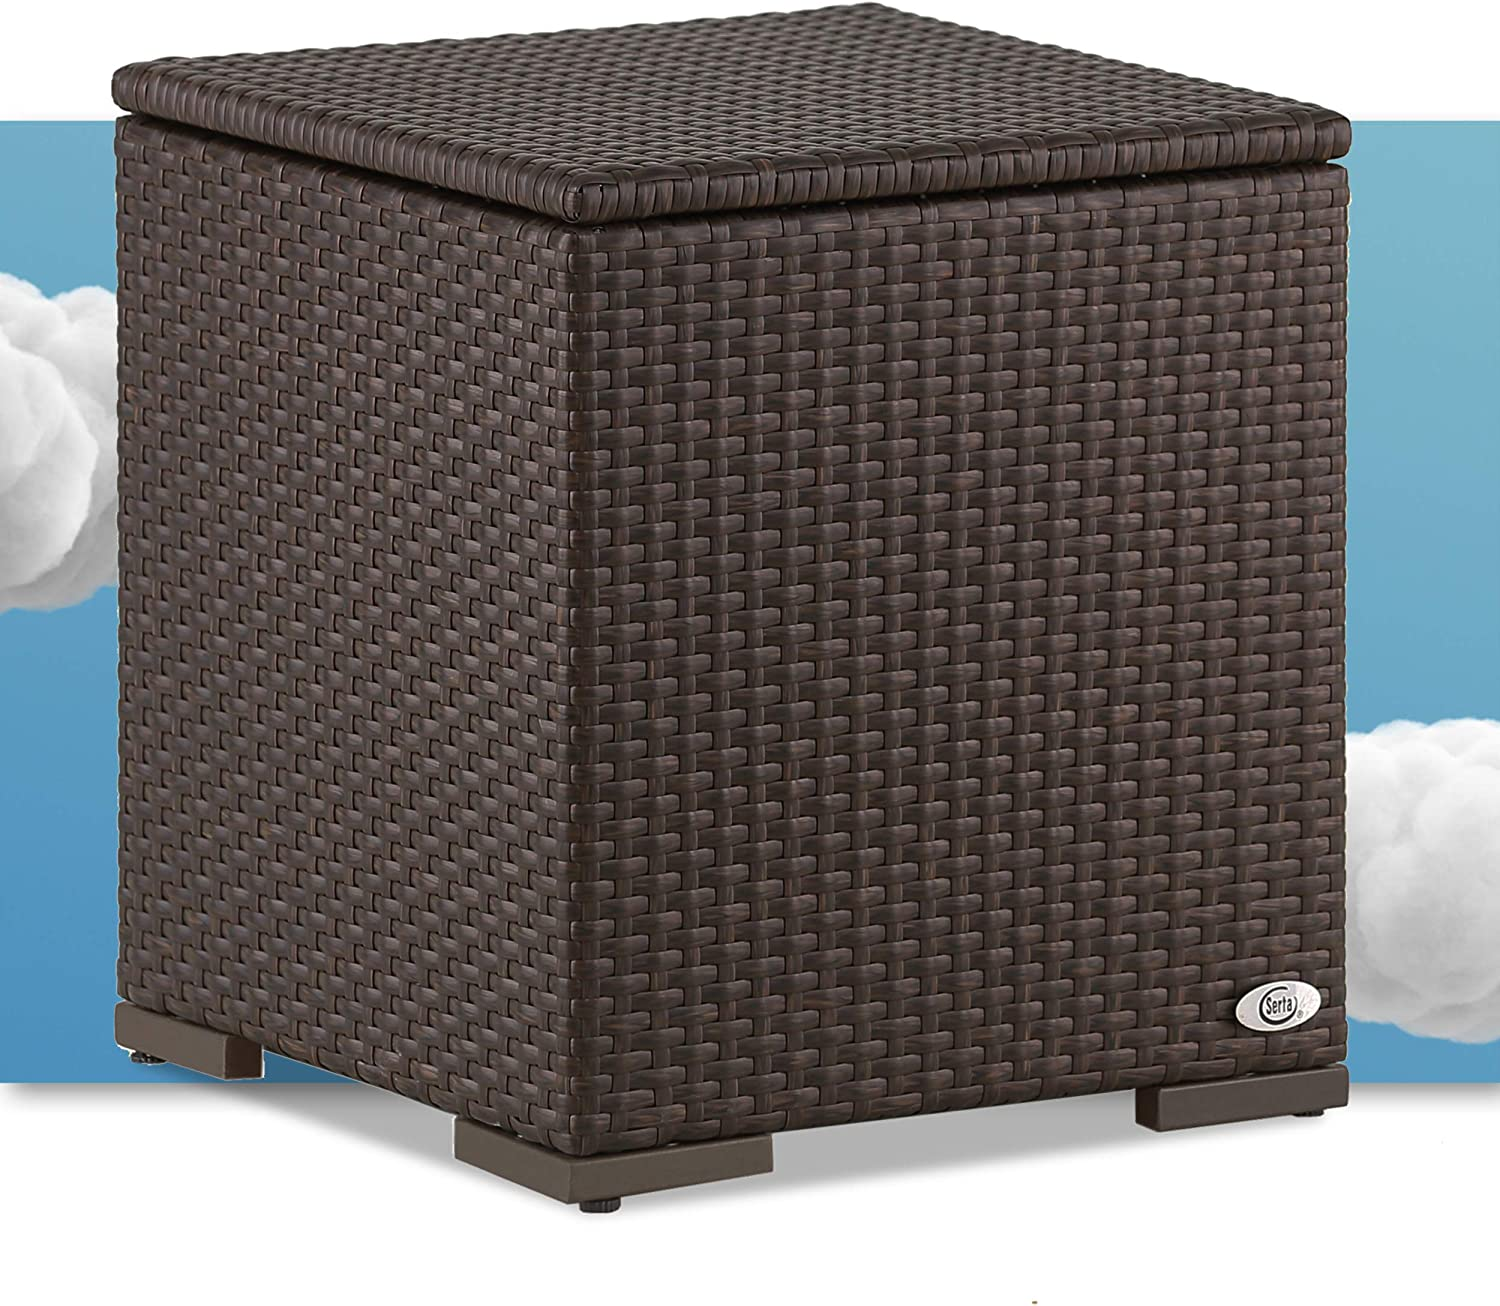 Serta Laguna Resin Outdoor Patio Furniture Collection, Side Table, Brown Wicker